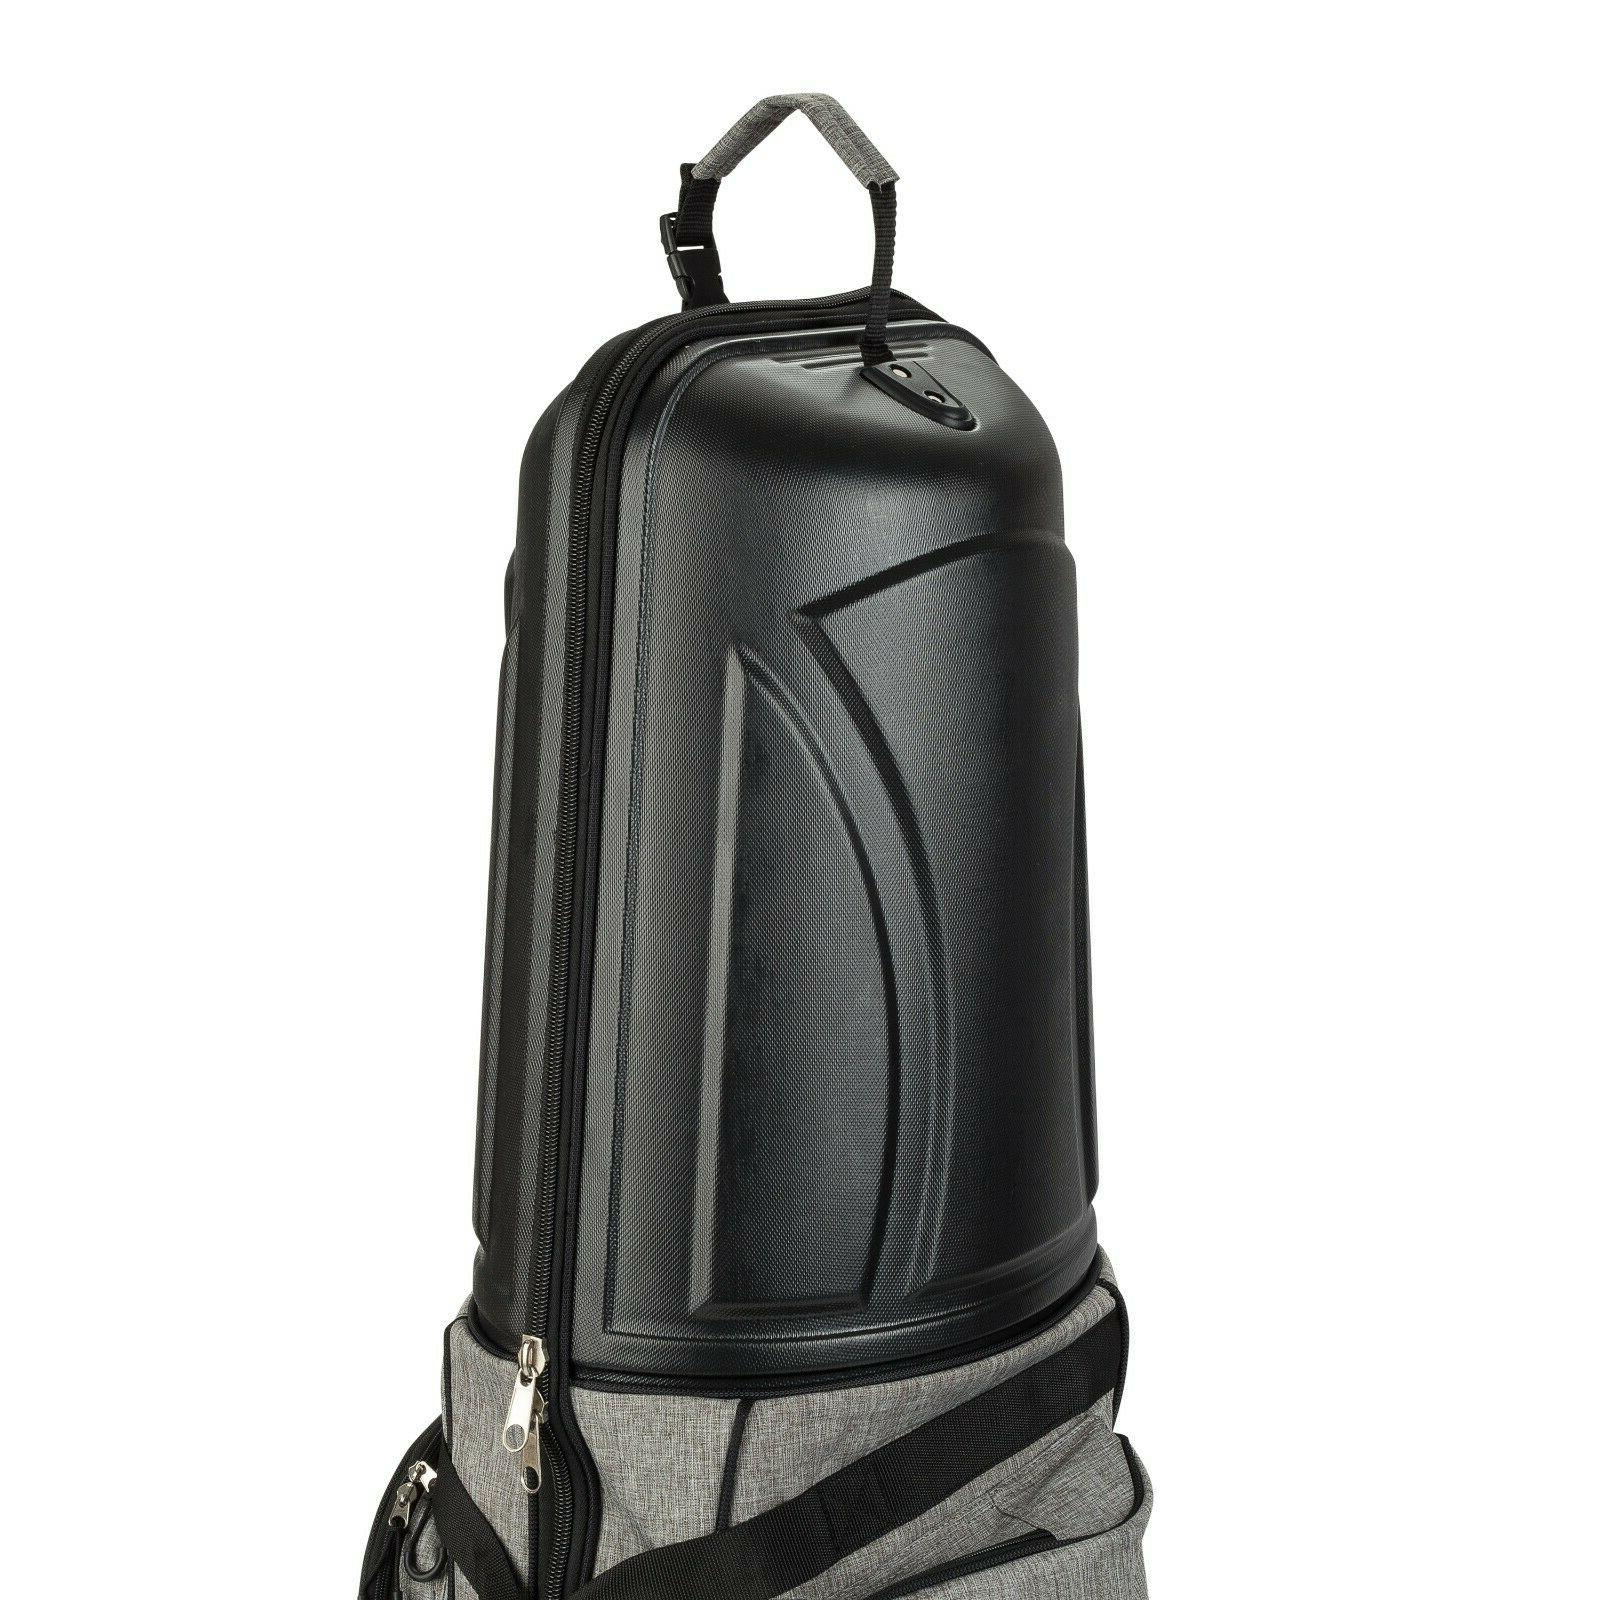 Founders Club Travel Bag Luggage Shell Top